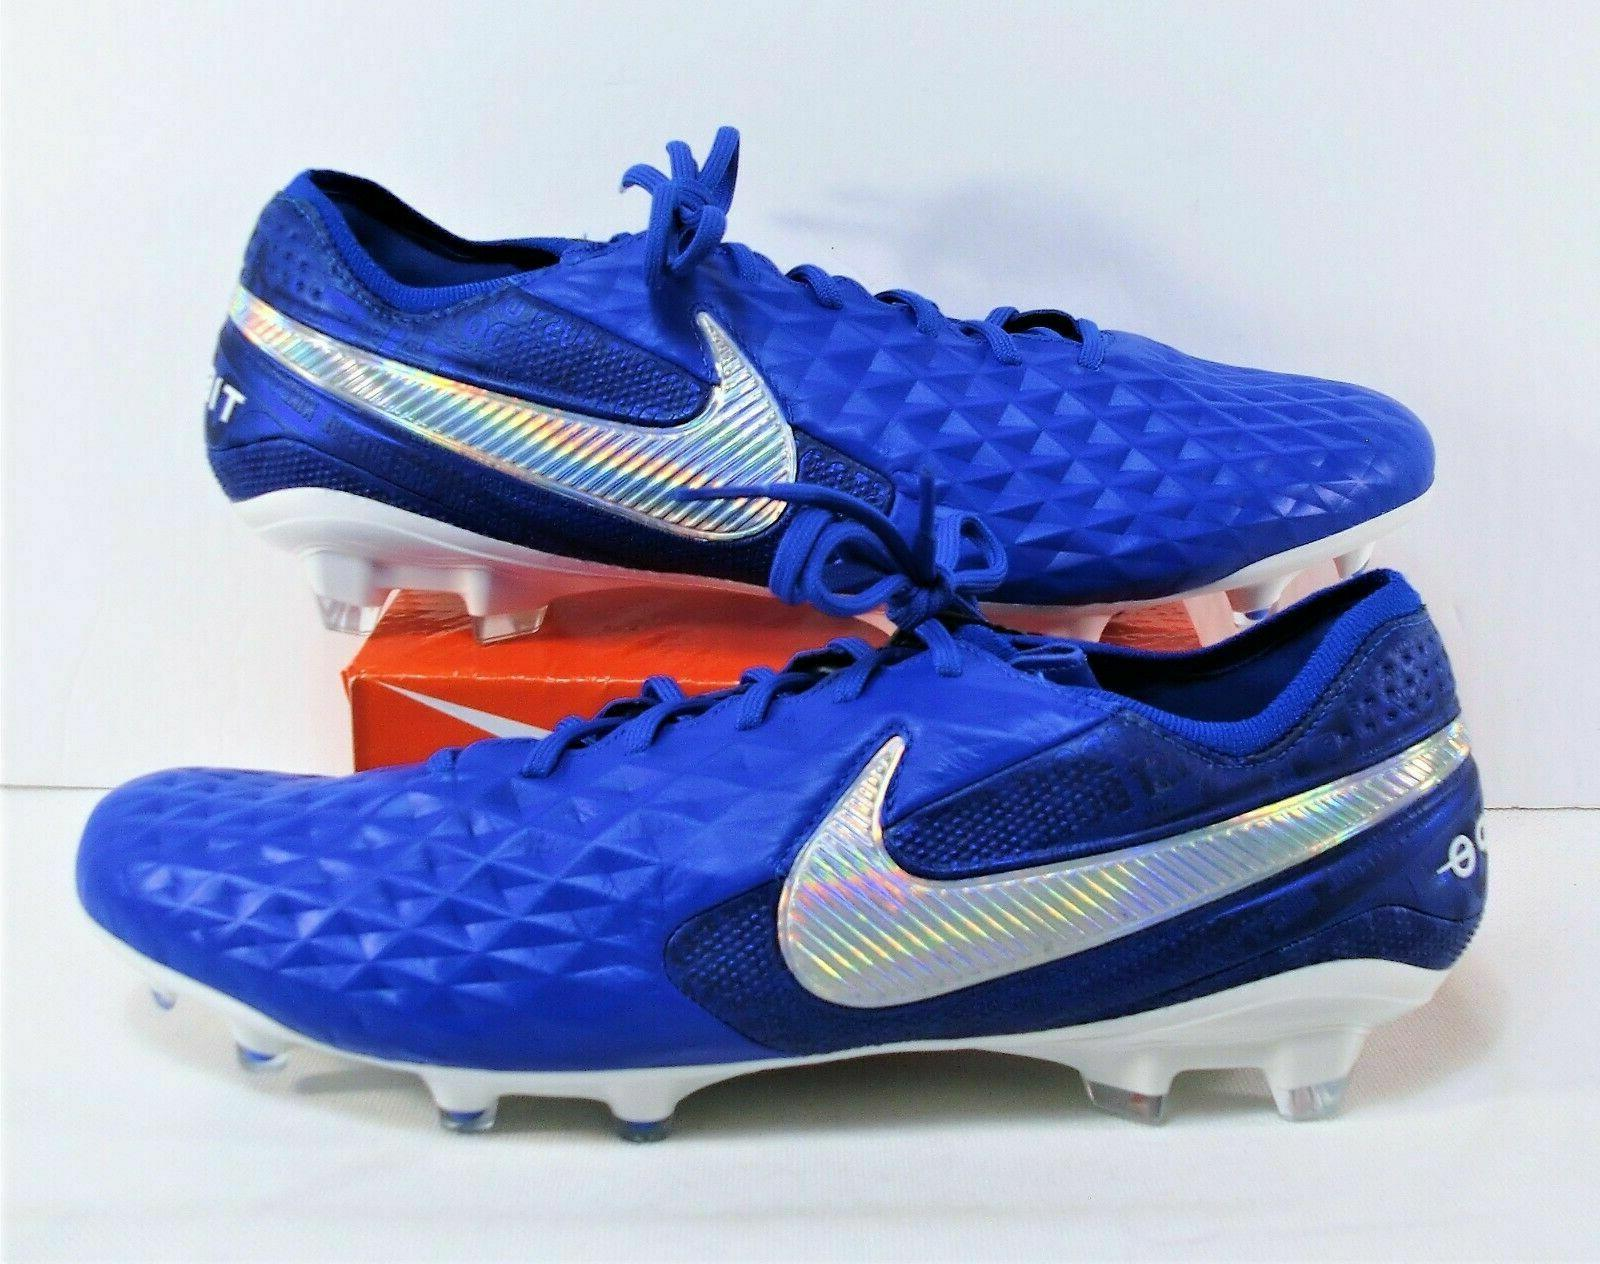 NIKE TIEMPO LEGEND 8 ELITE SOCCER CLEATS SIZE BLUE AT5293-414